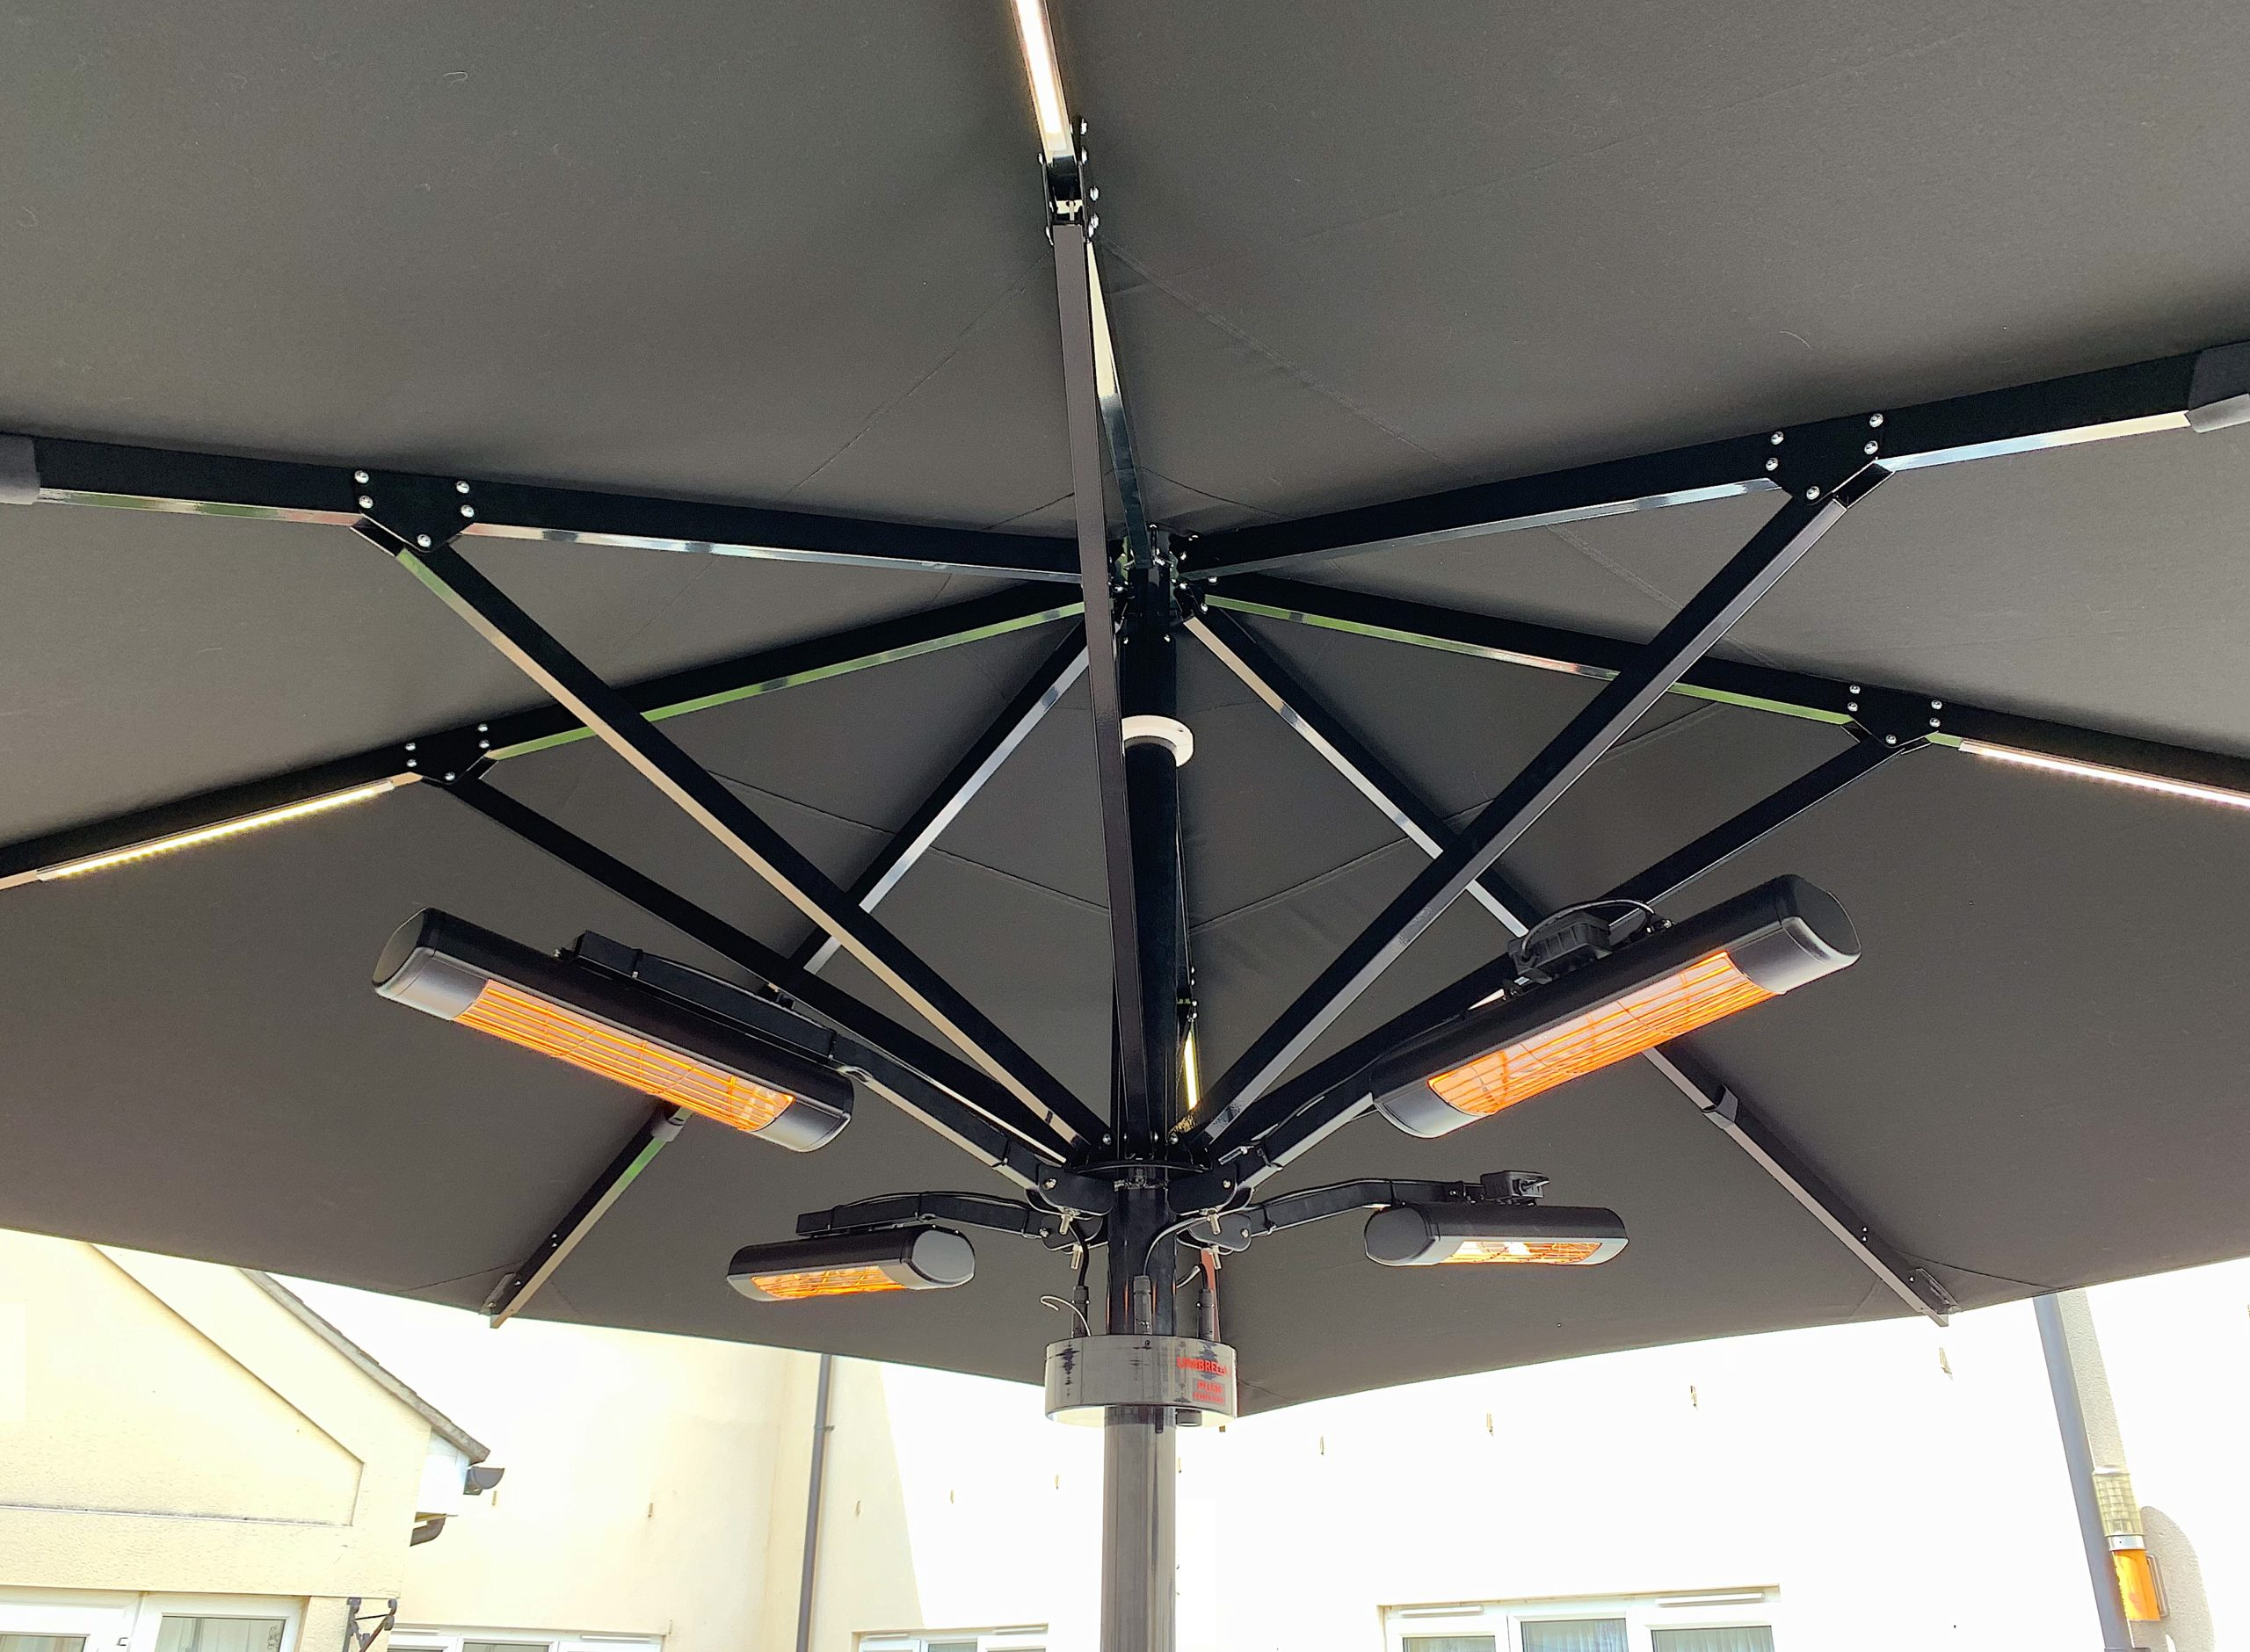 <p>Parasols-Bella-Commercial-Umbrella-Heating & Lighting-4x4m Black</p> <p></p> <p>Heating and Lighting displayed on a Stylish Parasol offering the ideal shade solution providing comfort and protection from the environmental conditions be it blazing hot sunshine or rain.</p> <p></p> <p>Popular not just within the hospitality industry and associated sectors, but also the parasol of choice of commercial and residential customers who demand high quality</p>